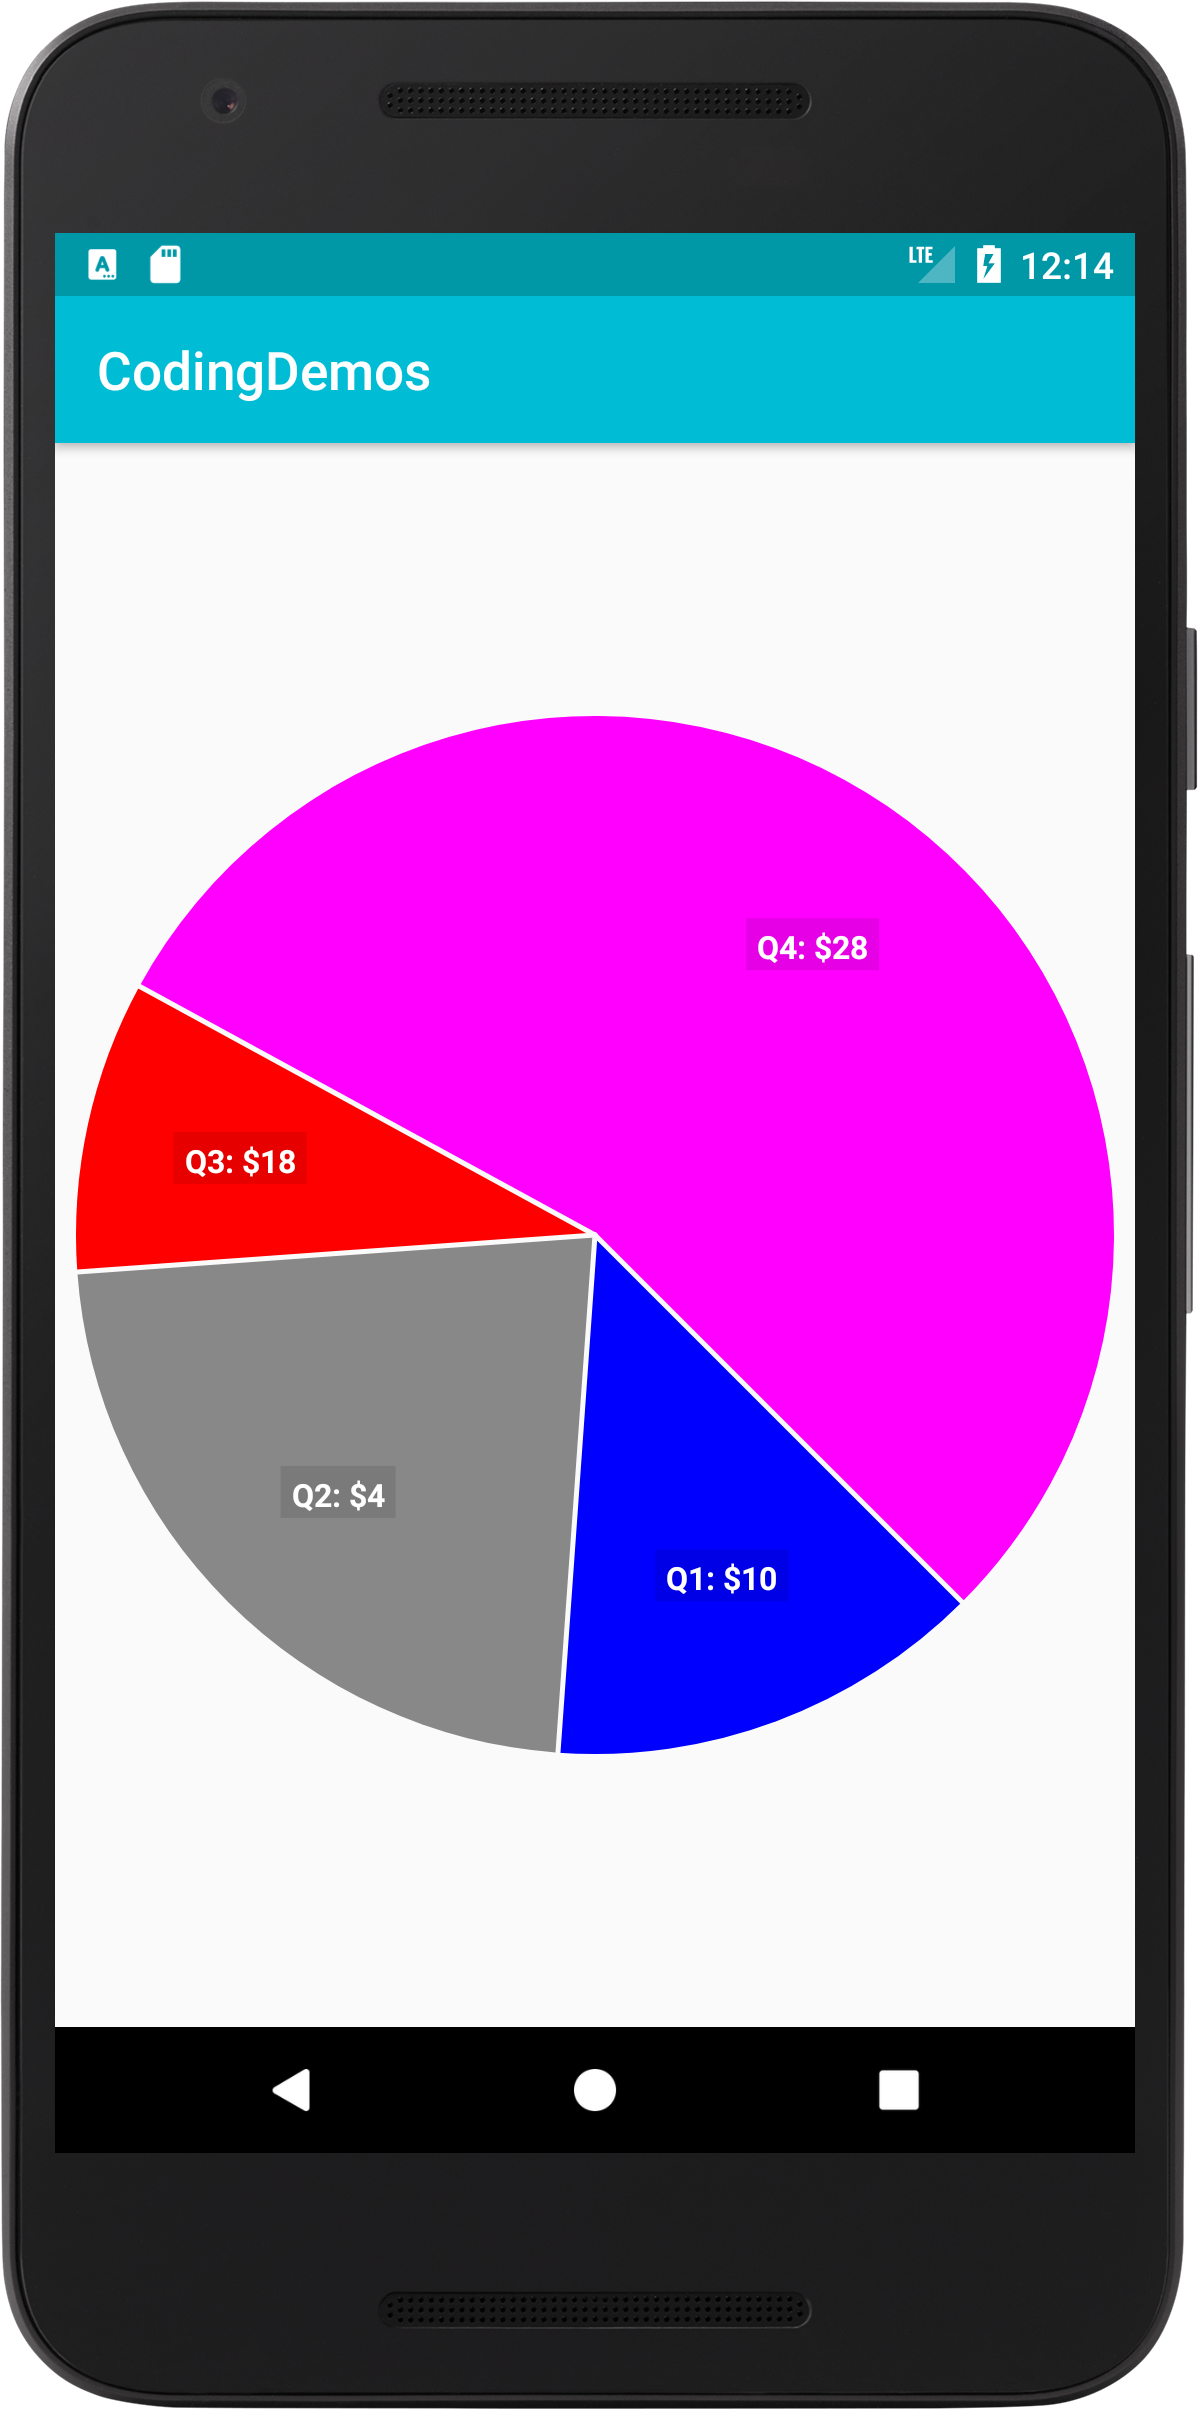 Android Pie Chart - How to Create Pie Chart in Android